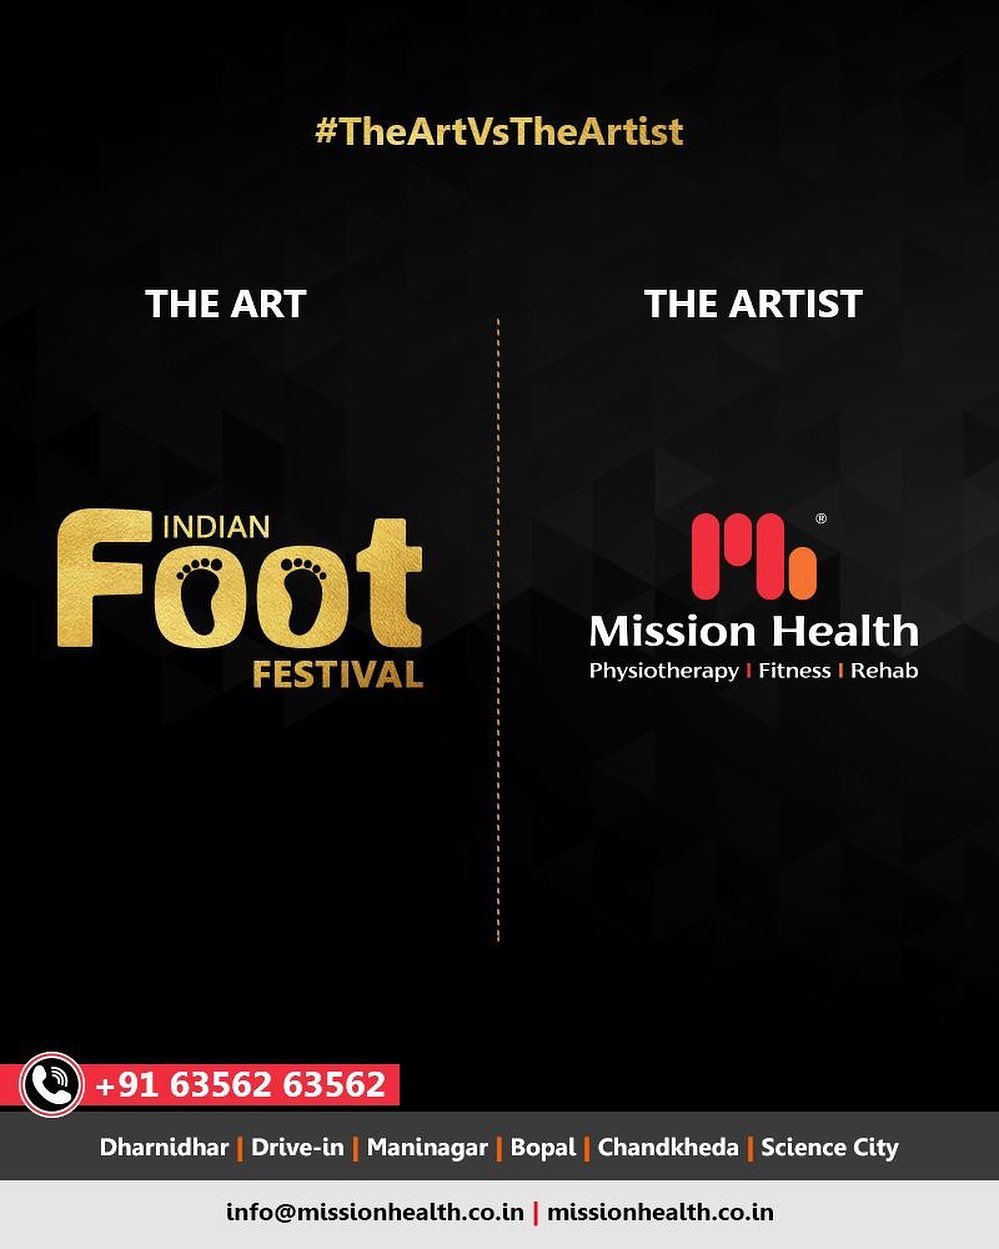 At the Indian Foot Festival by Mission Health, you can have a comprehensive look at the Foot & Lower Limb Biomechanics... The Indian Foot Festival is coming soon... Keep Reading this space for more updates!  Call: +916356263562 Visit: www.missionhealth.co.in  #IndianFootFestival #ComingSoon #FootClinic #footpain #footcare #foothealth #heelpain #anklepain #flatfeet #painrelief #healthyfeet #happyfeet #MissionHealth #MissionHealthIndia #MovementIsLife